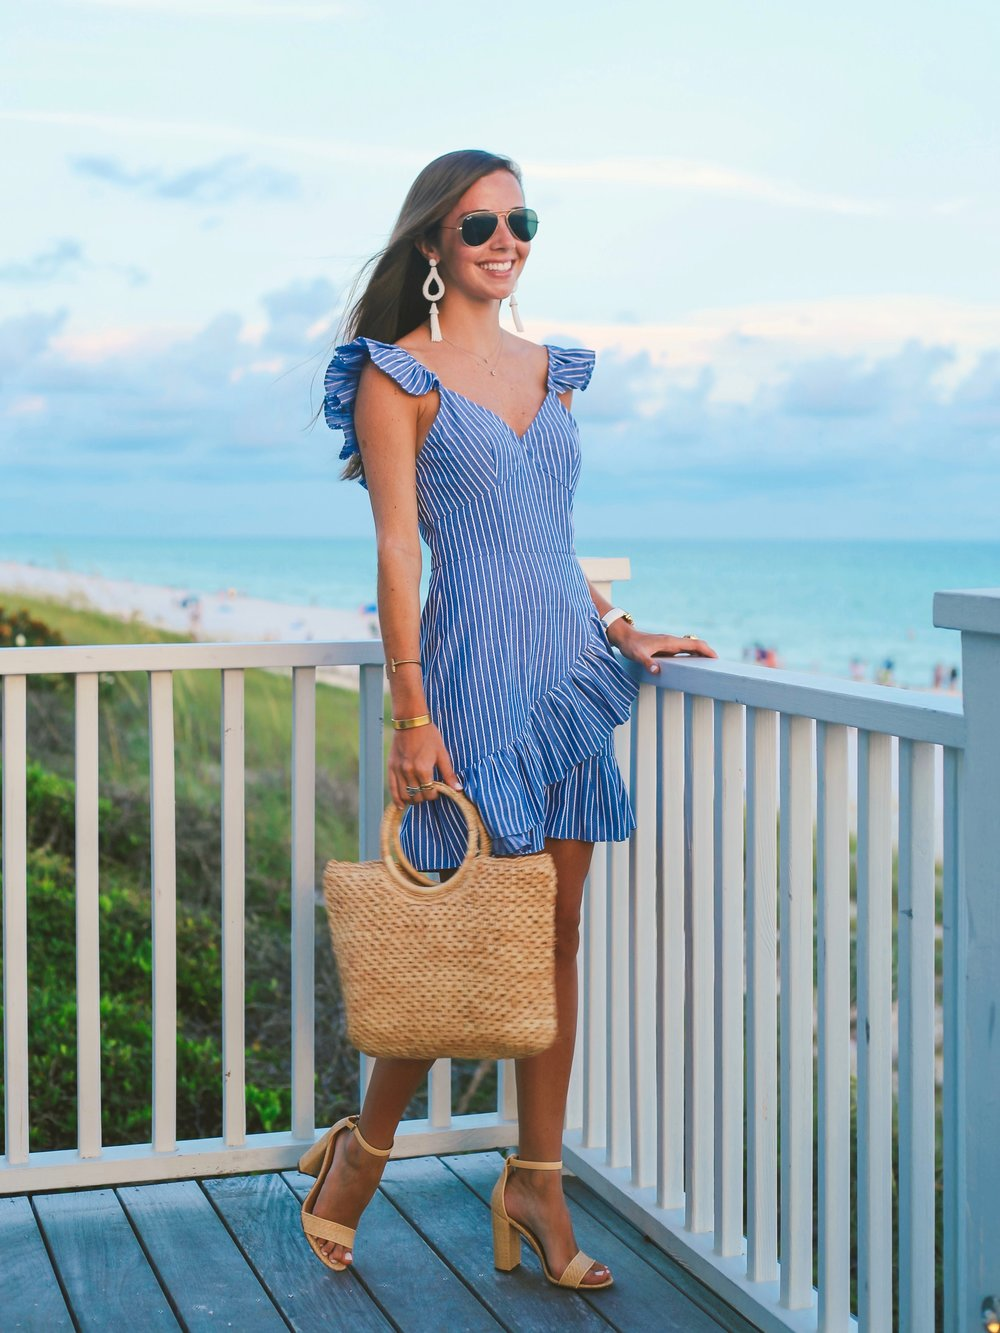 LCB STYLE FASHION BLOGGER SEASIDE FLORIDA 30A (20 of 26).jpg